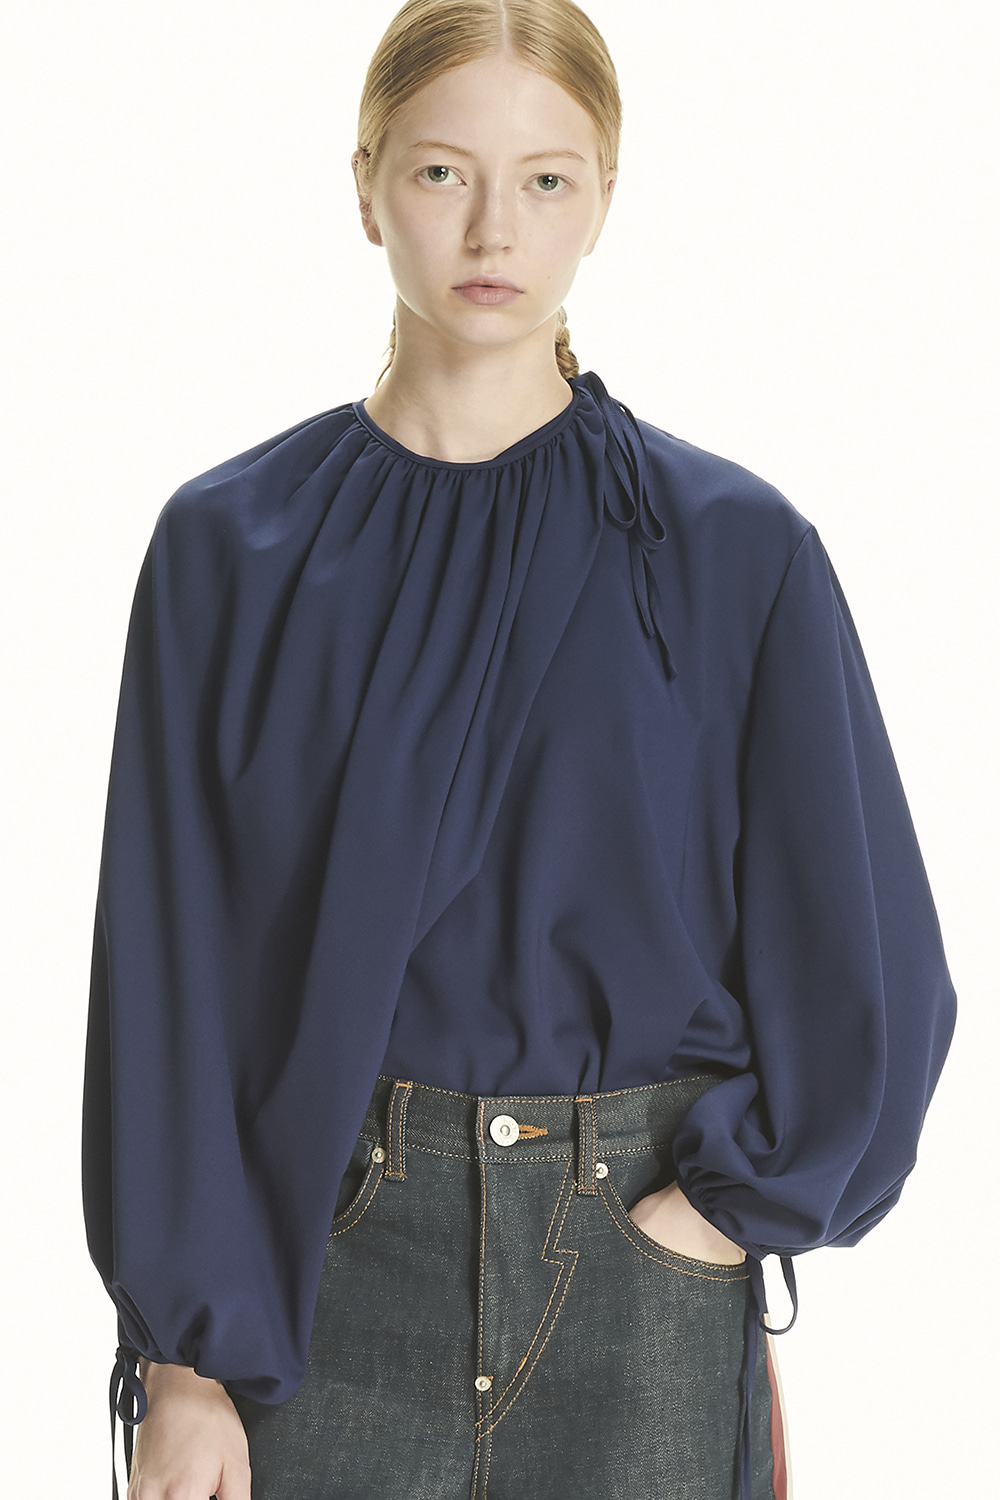 PS21 TWO-WAY NAVY FLOUNCE BLOUSE